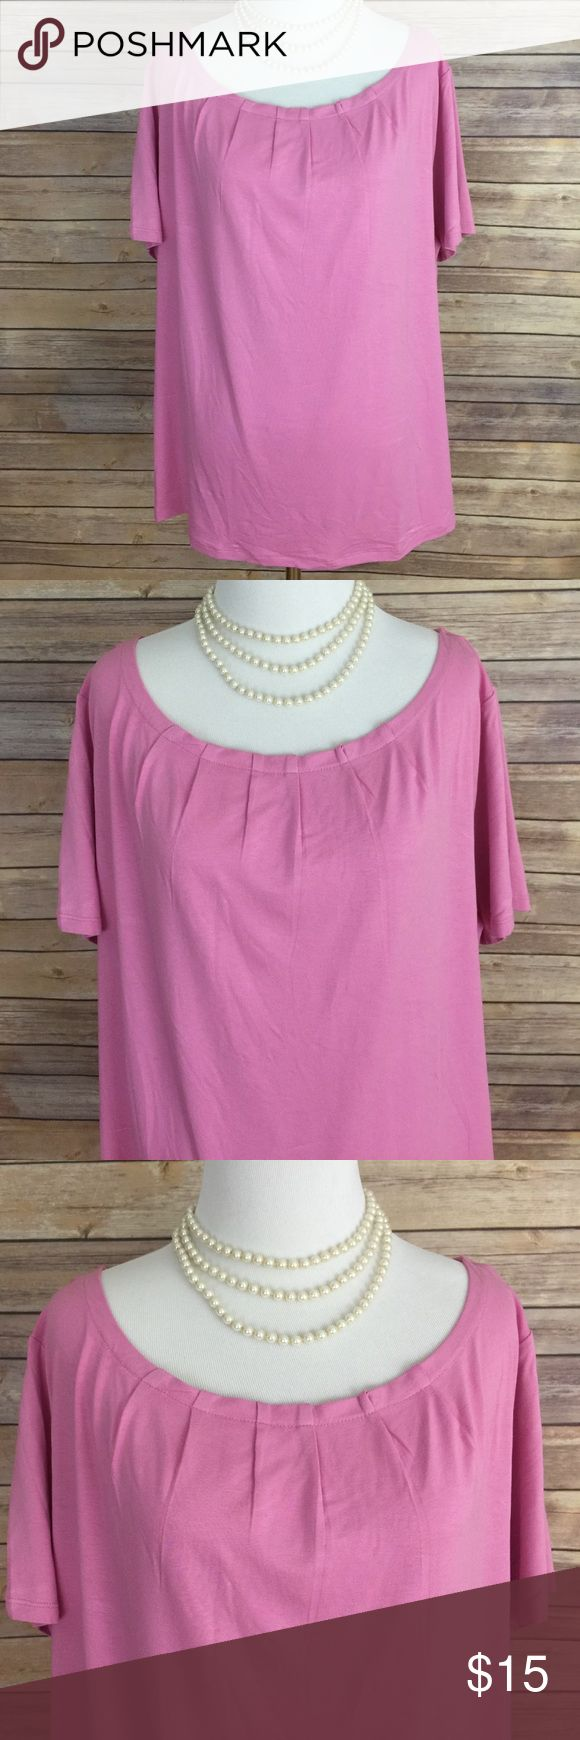 "TALBOTS WOMAN Pink Short Sleeve Top, Size 1X TALBOTS WOMAN Pink Short Sleeve Women's Top , Size 1X.  This comfortable pink top has a beautiful rounded neckline with subtle gathering and short sleeves.  The material is 96% Rayon and 4% Spandex, and the approximate measurements are as follows:  Length = 24"" and Bust = 46"".  All measurements are approximate and taken with the garment laying flat.  Accessories are sold separately. Talbots Tops Tees - Short Sleeve"